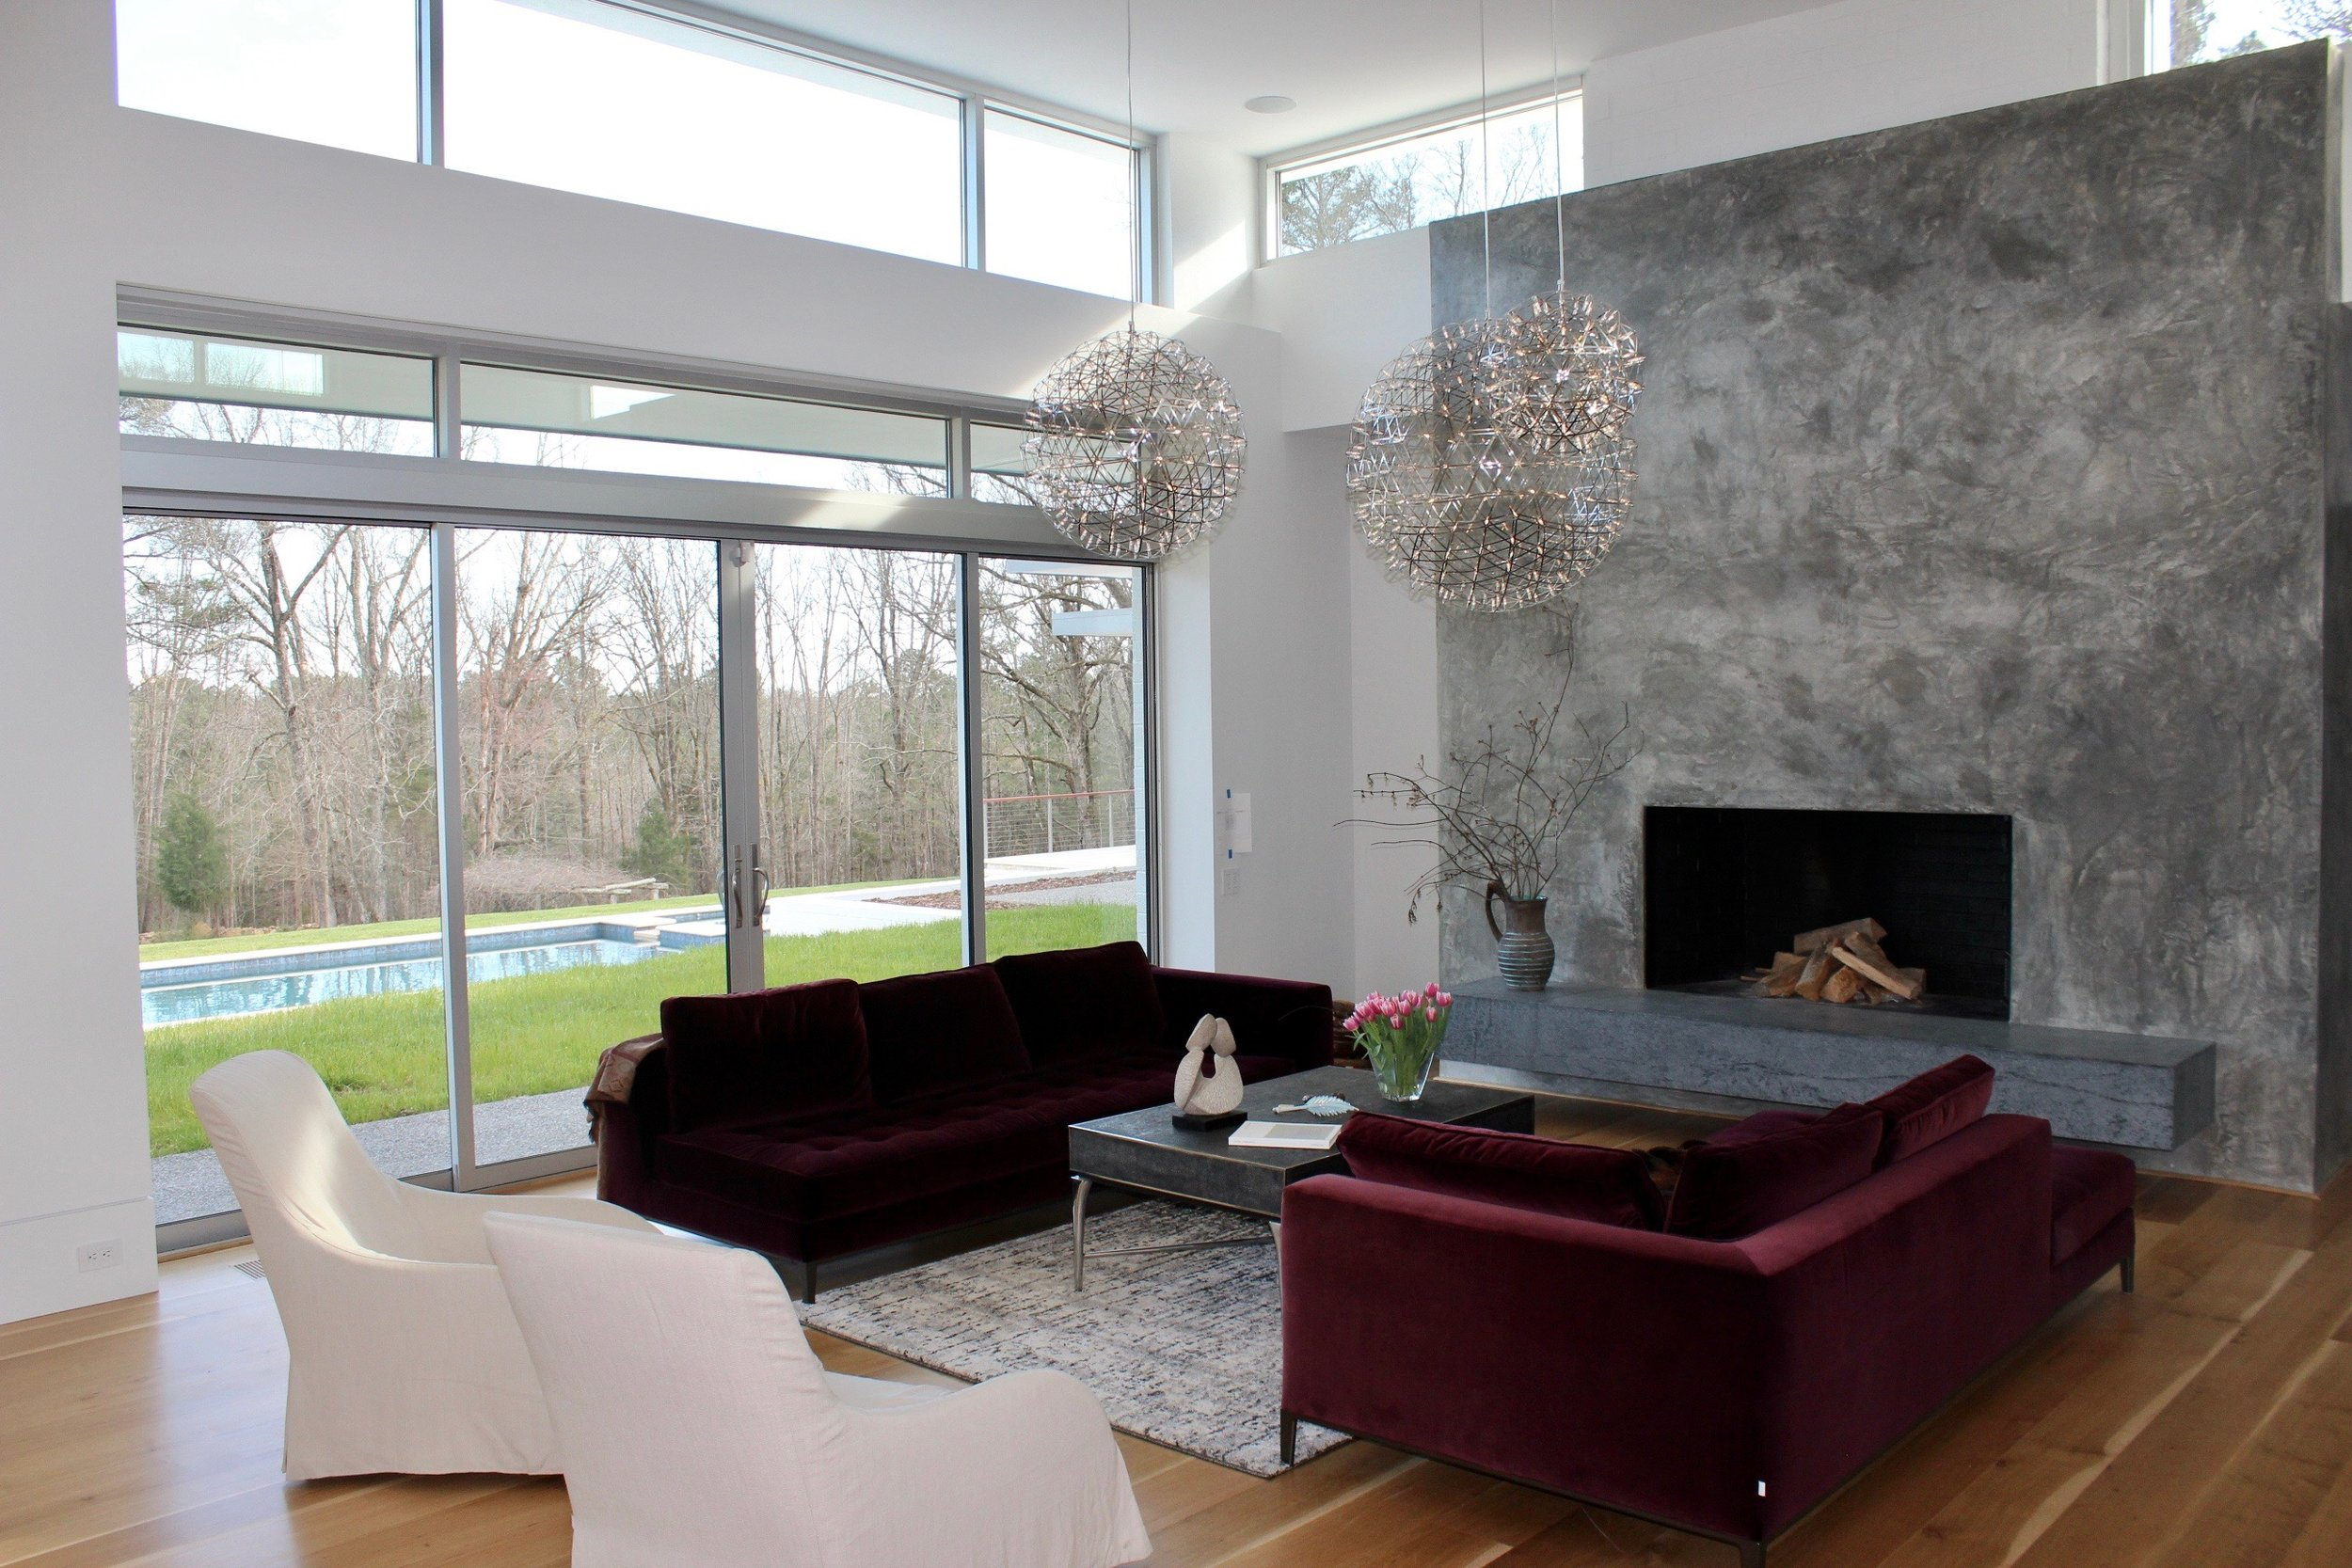 06 Private Residence Chapel Hill.jpg